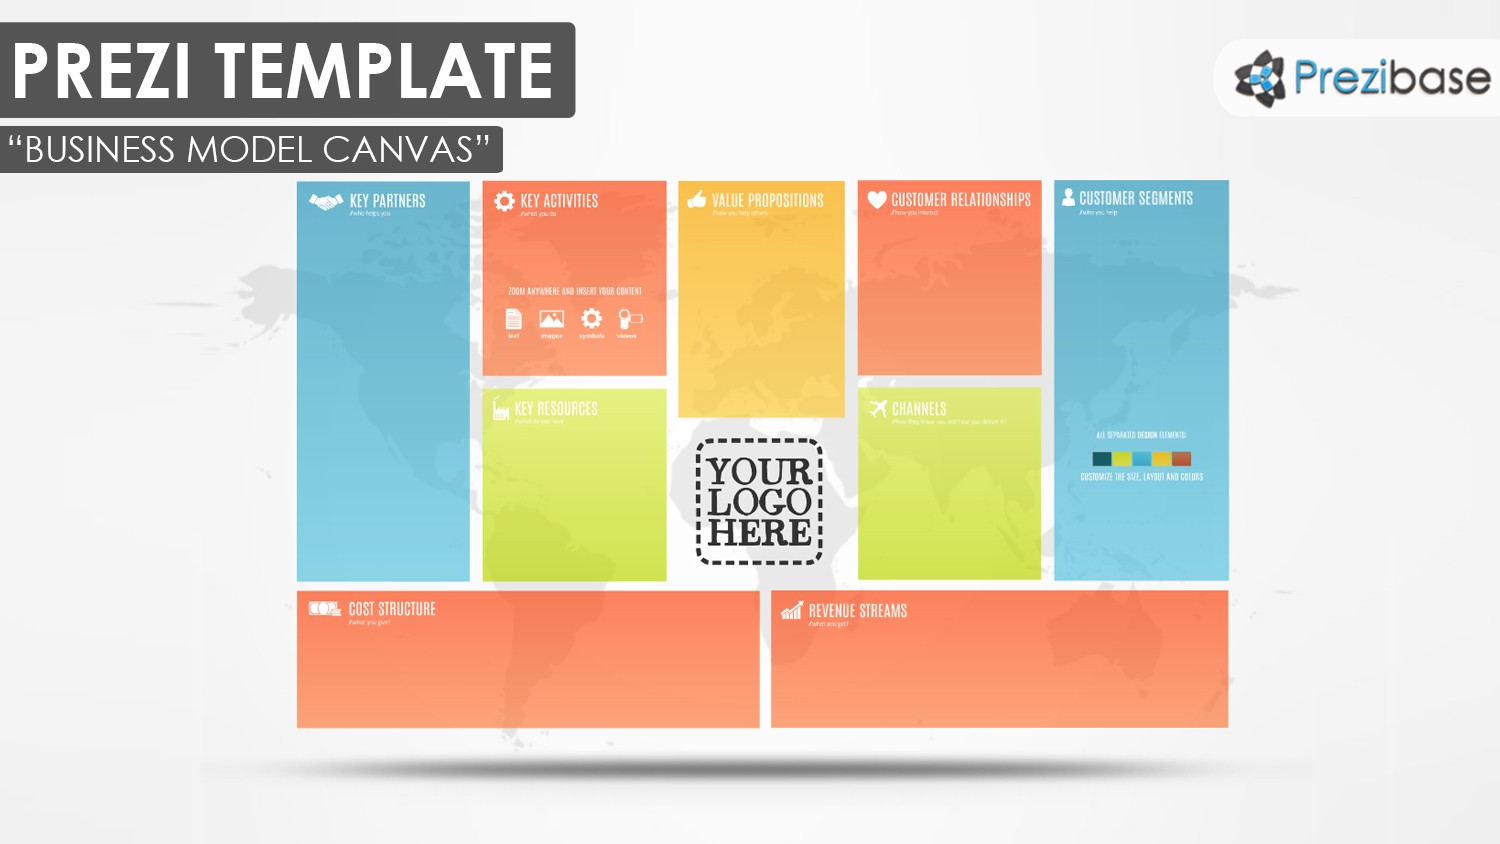 Business model canvas prezi template prezibase business model canvas colorful pitch world map prezi template wajeb Images